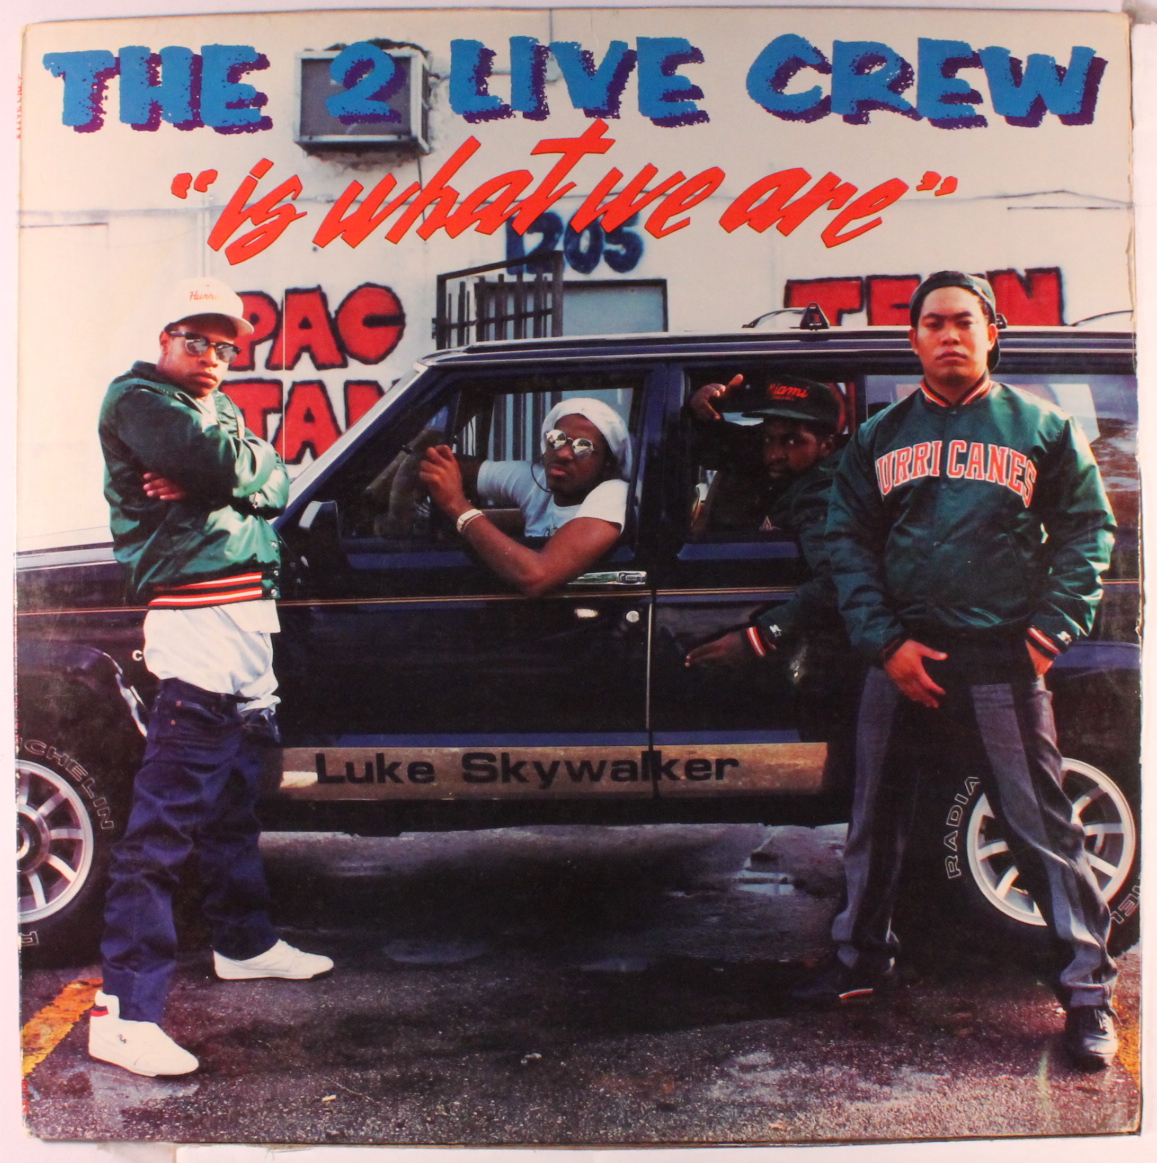 The cover of the album with the song about the rat and the cheese, with original 2 Live leader Luther Campbell.